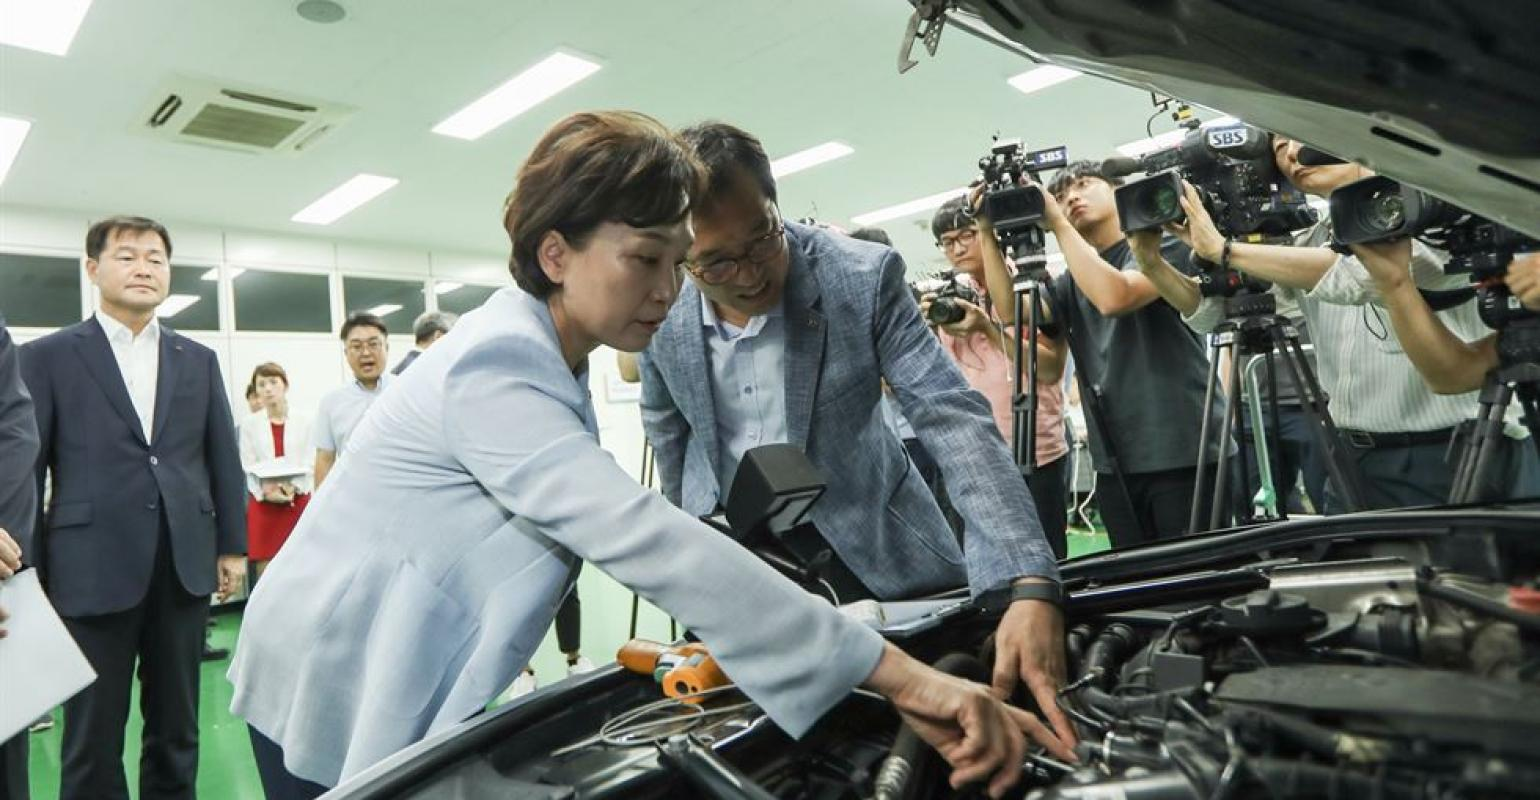 Engine Fires Prompt BMW Recall in South Korea   WardsAuto